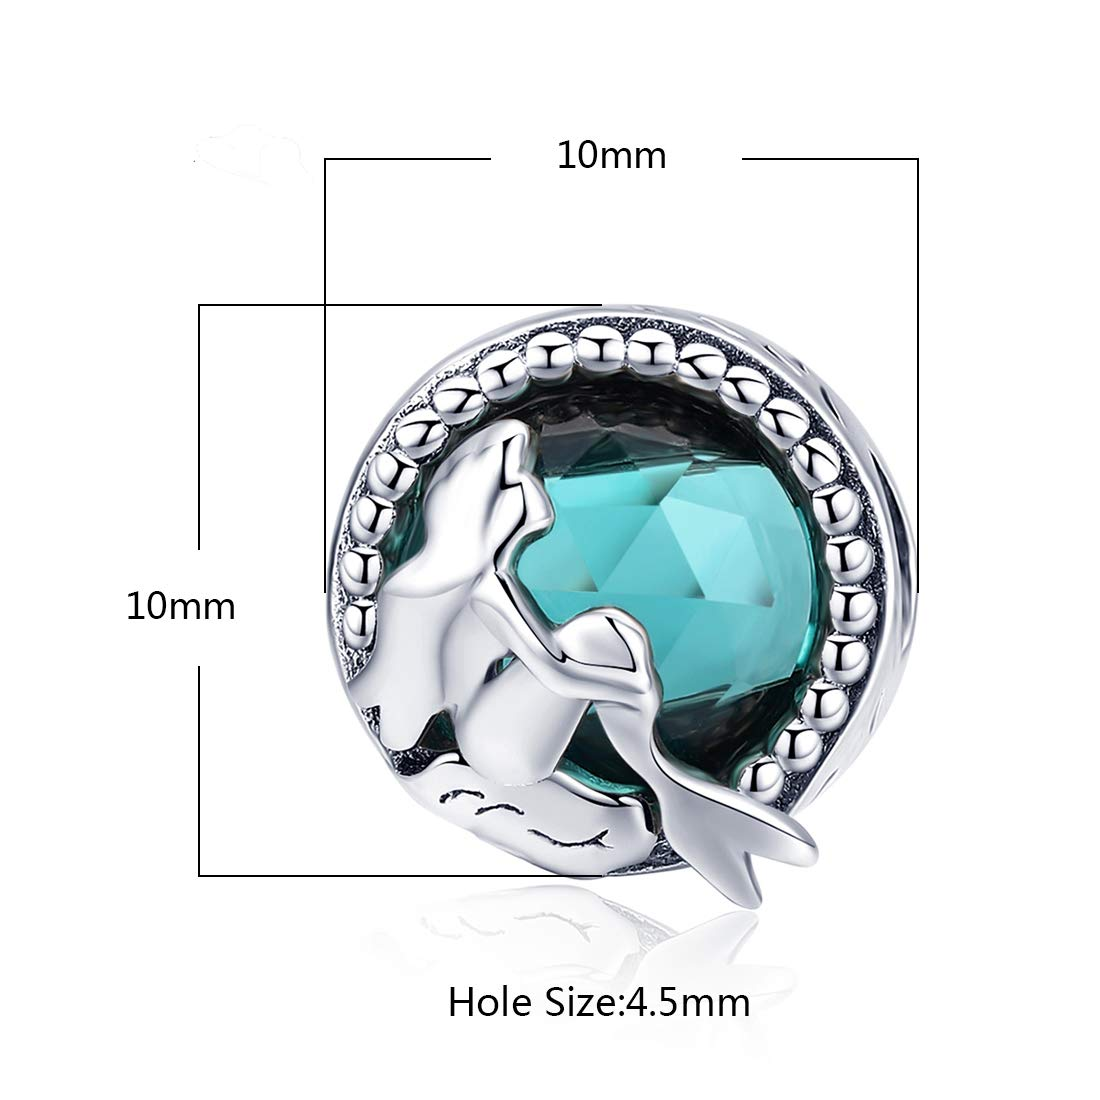 JIAYIQI 925 Sterling Silver Charm Bead Love Heart in Your Hands Charm for European Bracelets Necklace